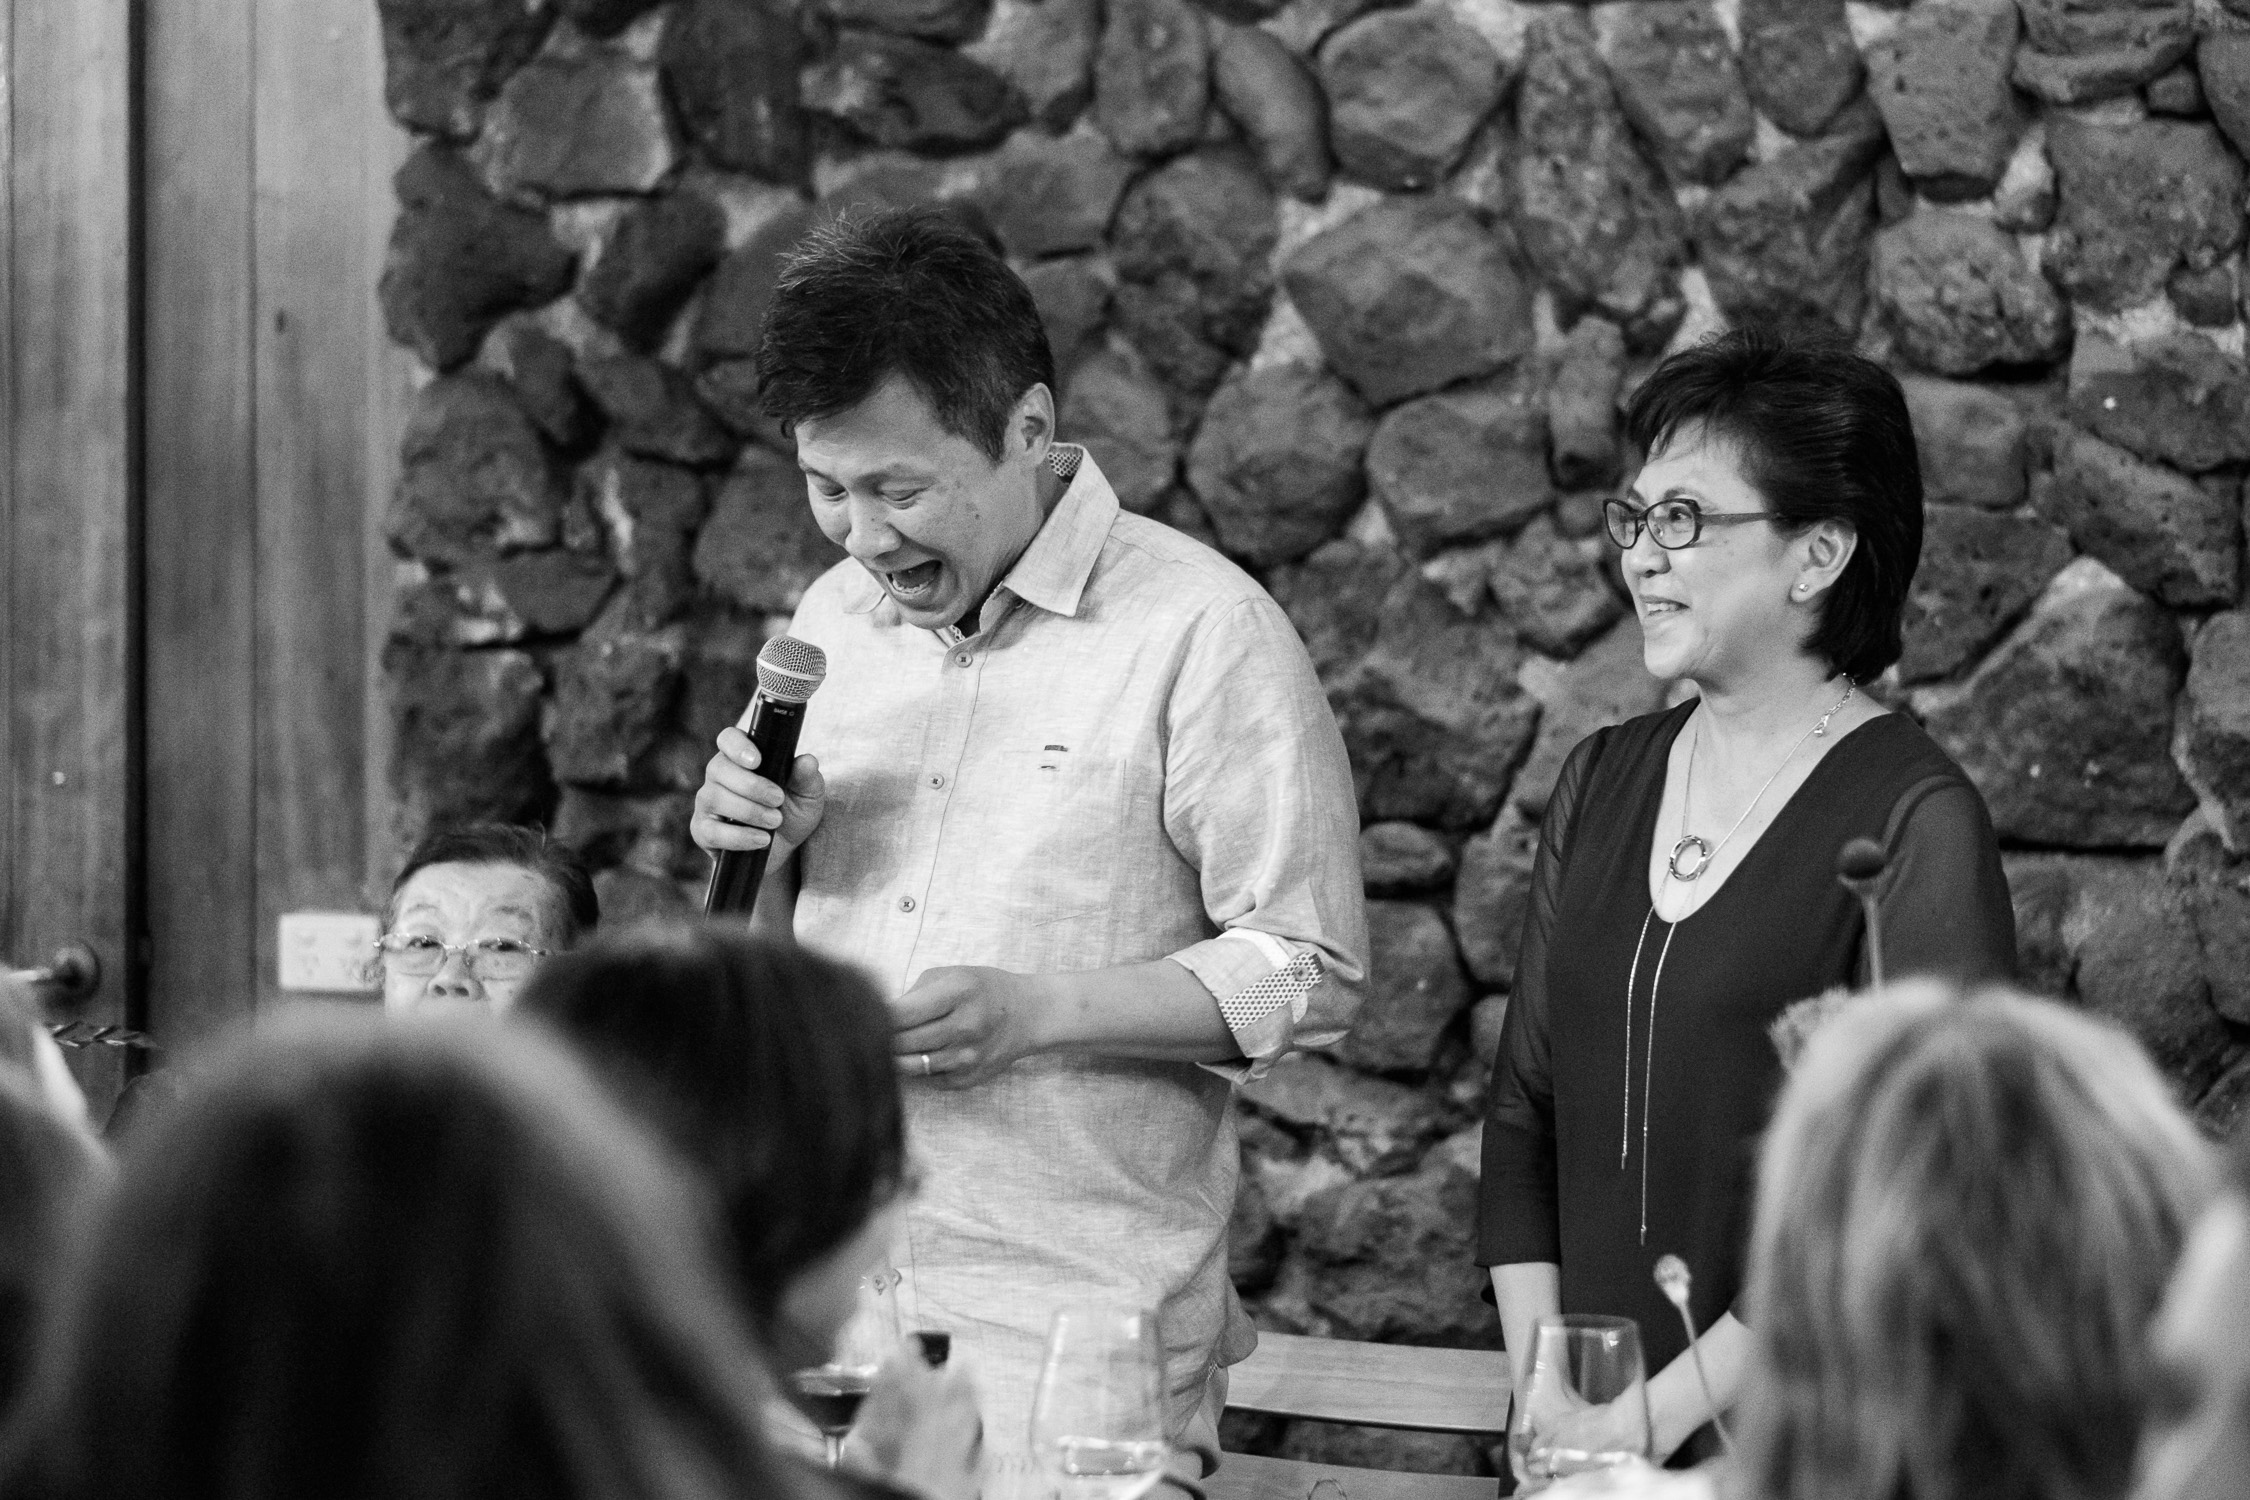 Melbourne Sunnystones Camp Wedding - bride parents speech